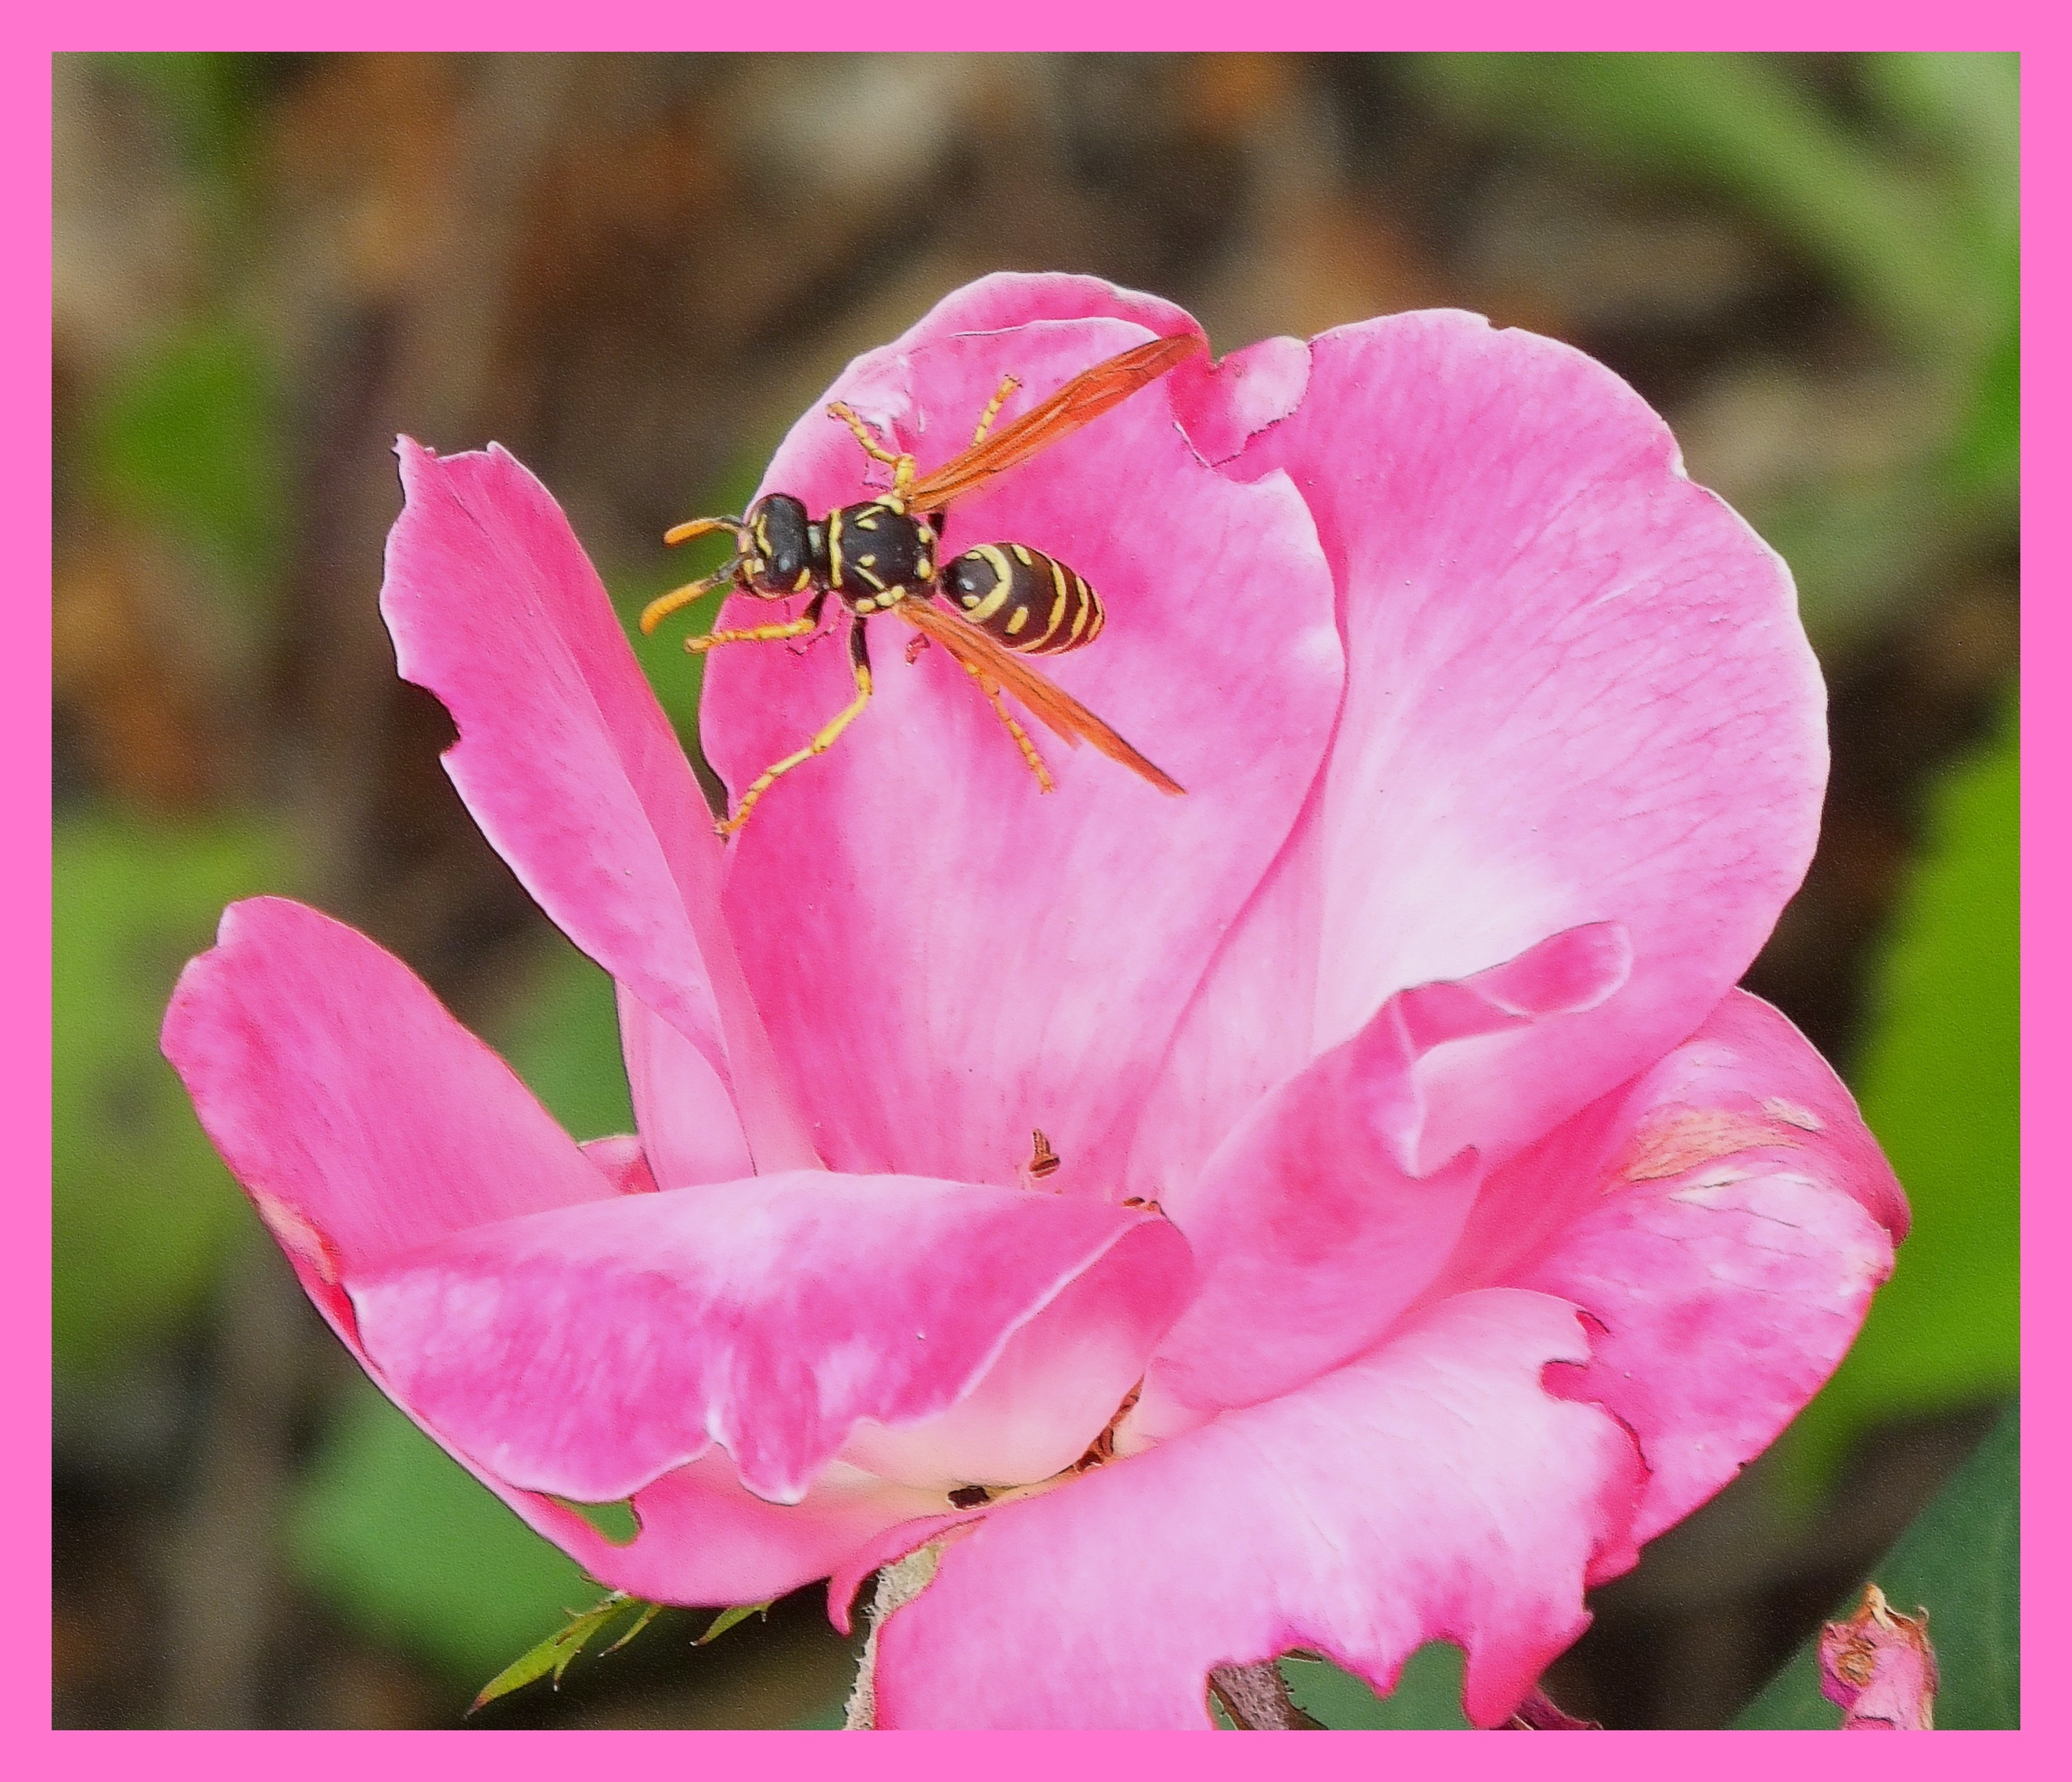 Wasp in Flower. (1) Photo by Thomas Peace c. 2015